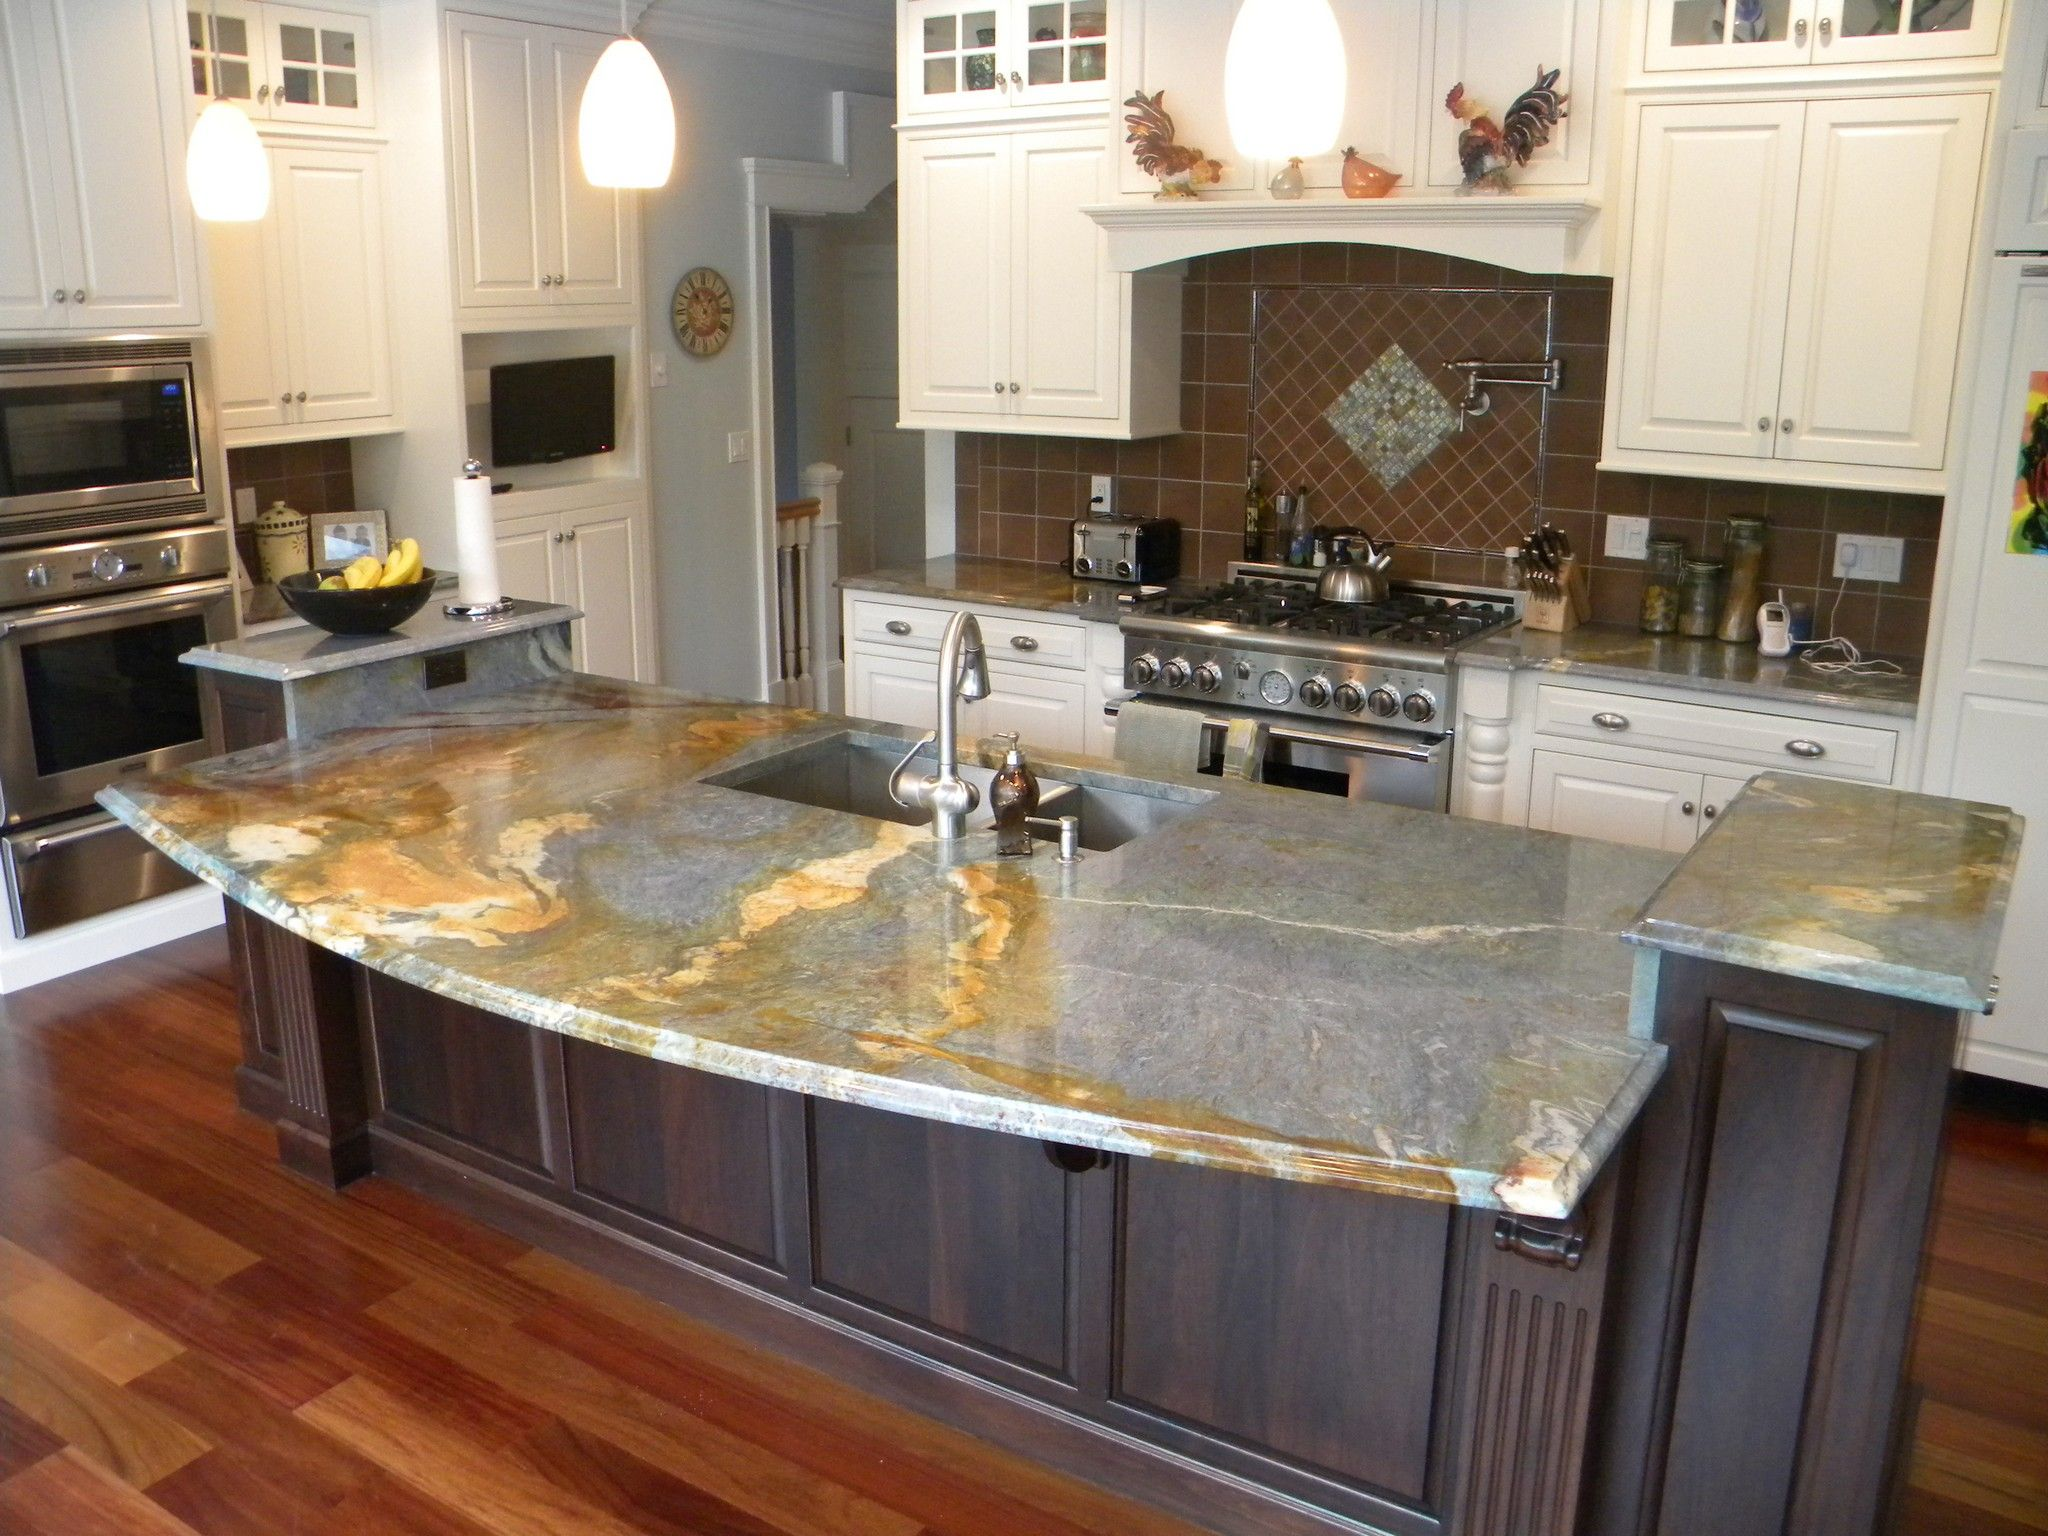 Granite Island Kitchen Waterfall Countertop Granite Countertops Marble Countertops